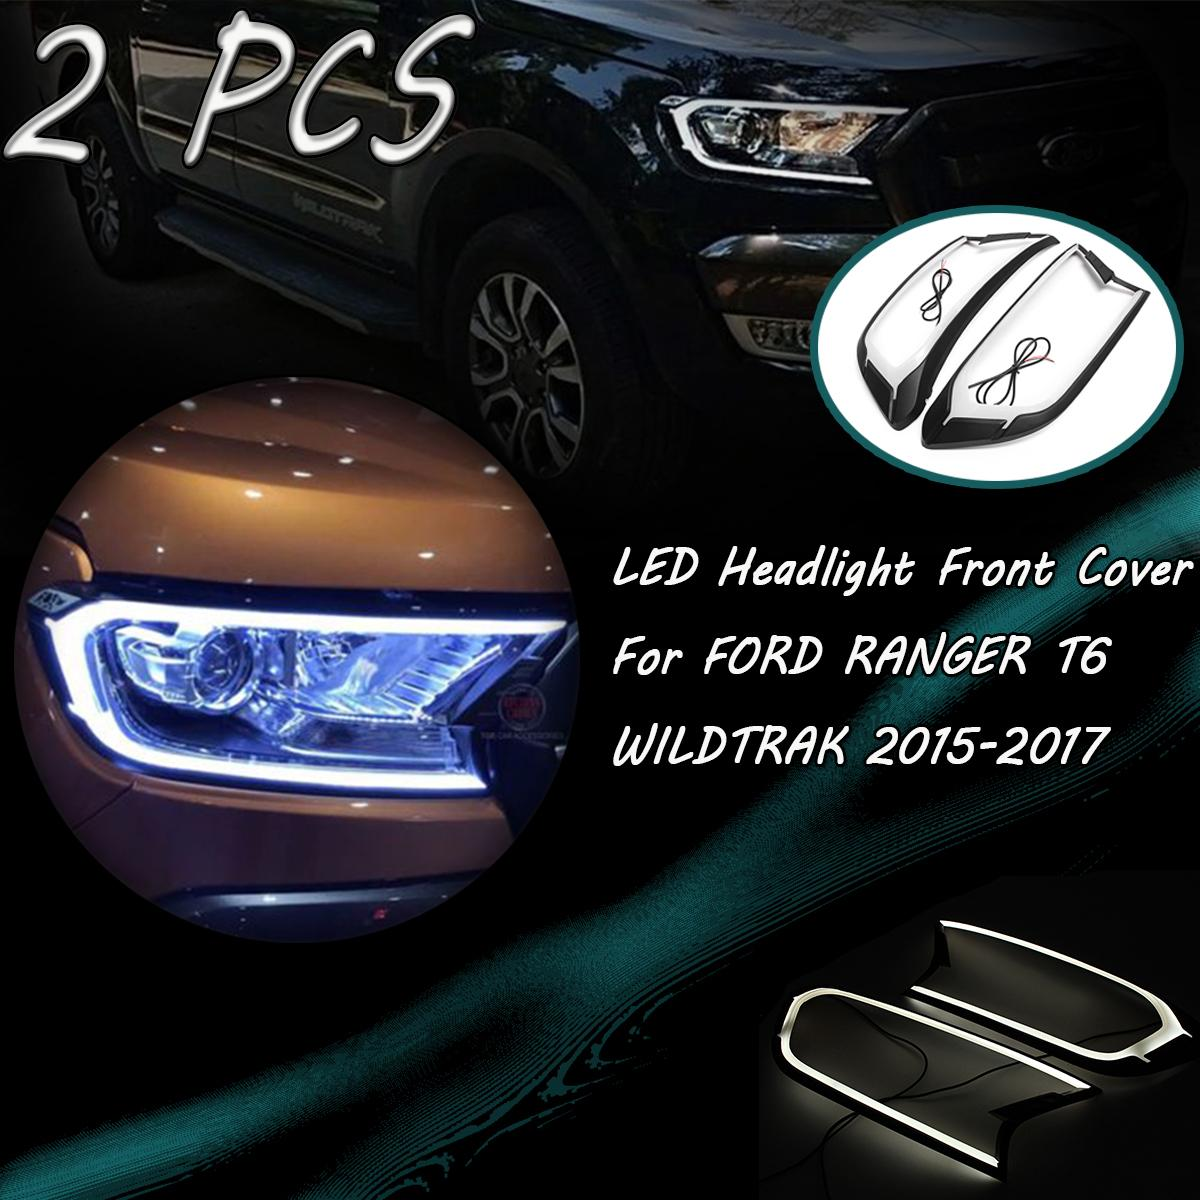 2pcs Matte Black LED Head Light Front Shell Cover Trim For FORD RANGER T6 WILDTRAK 15-17 ABS Lamp Hoods